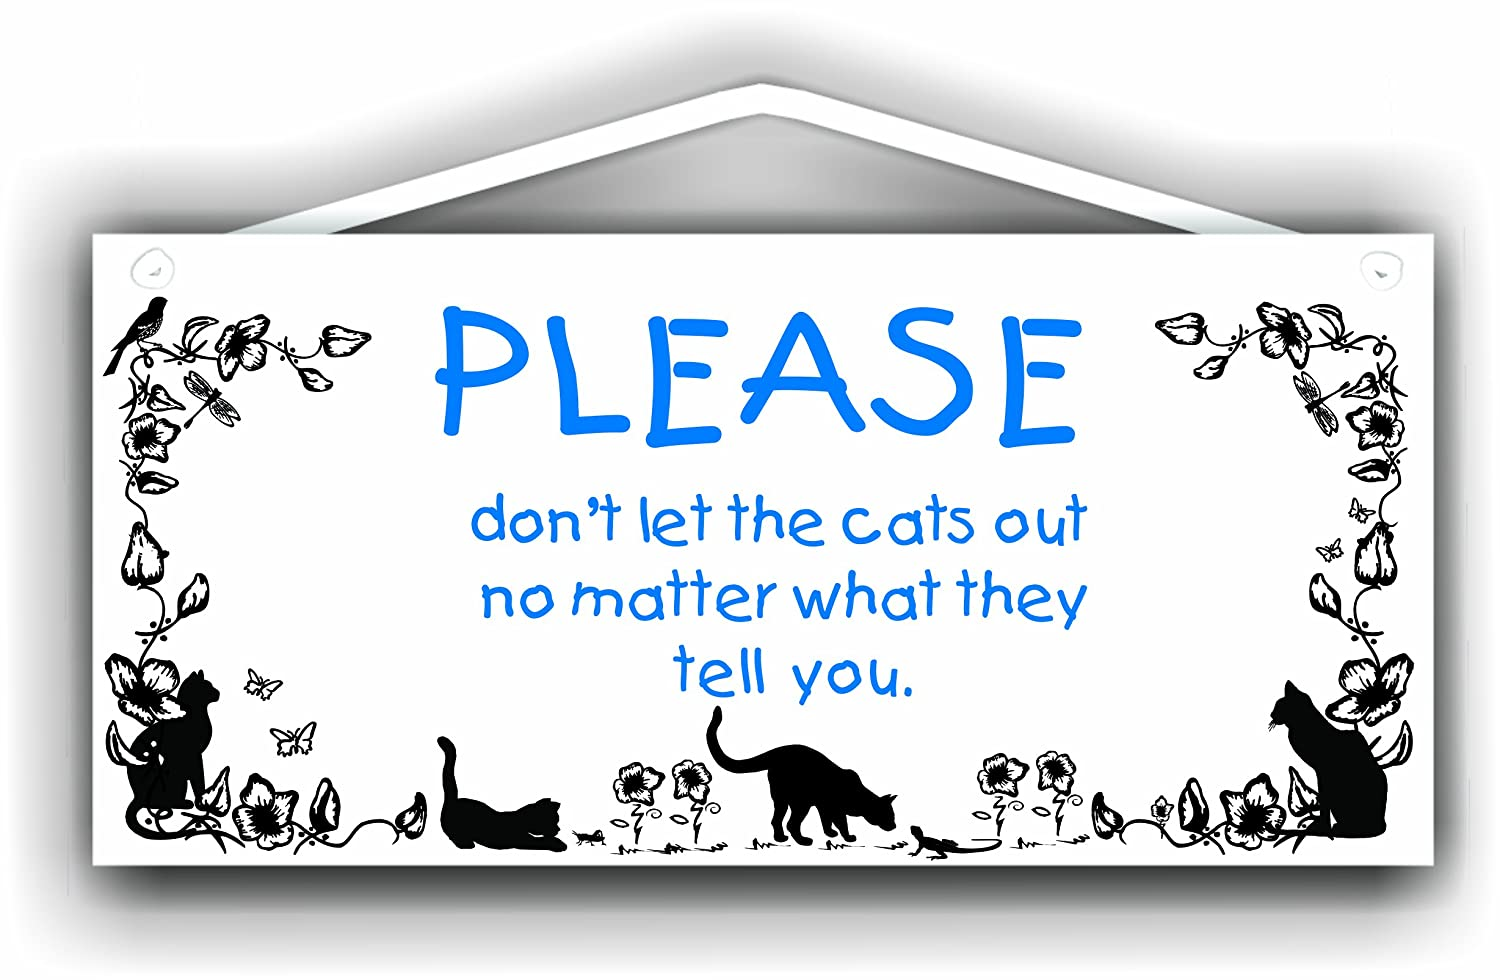 Don't let the cats out no matter what they tell you MySigncraft